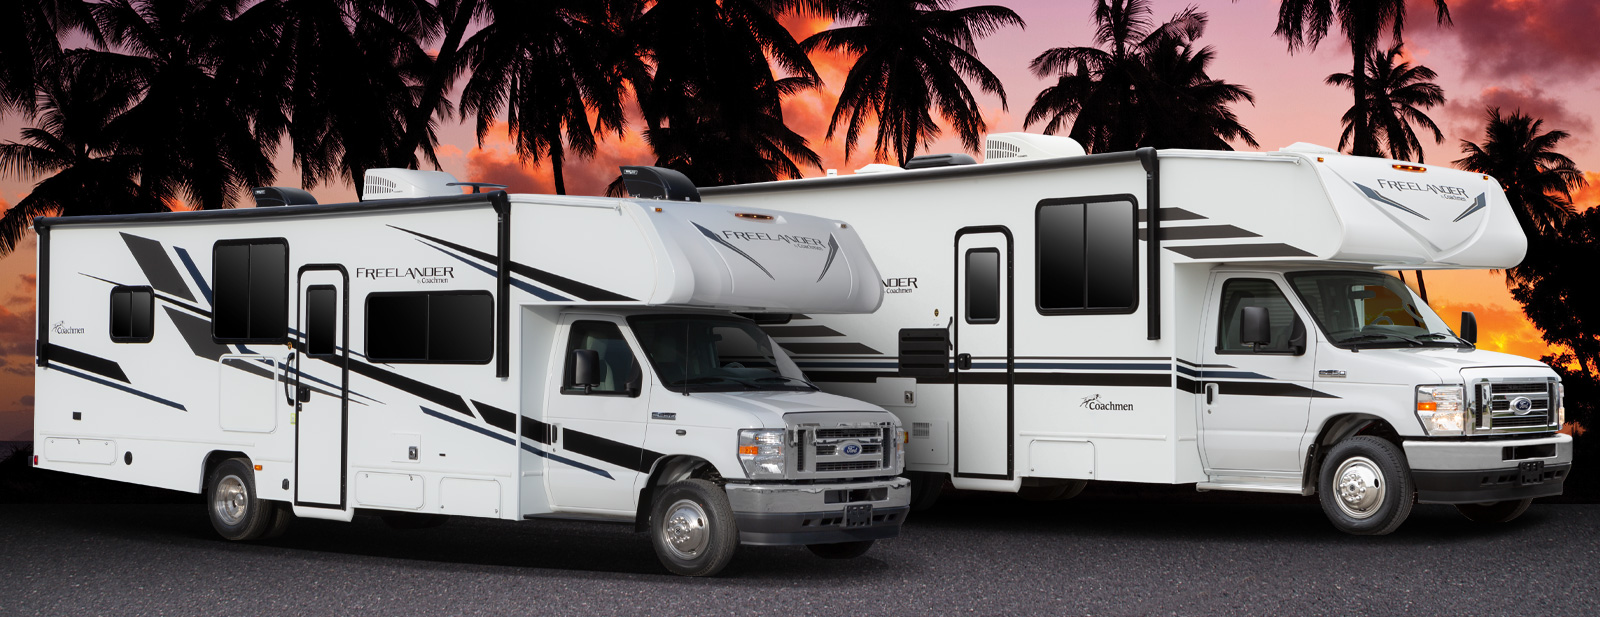 Freelander Class C Motorhomes by Coachmen RV